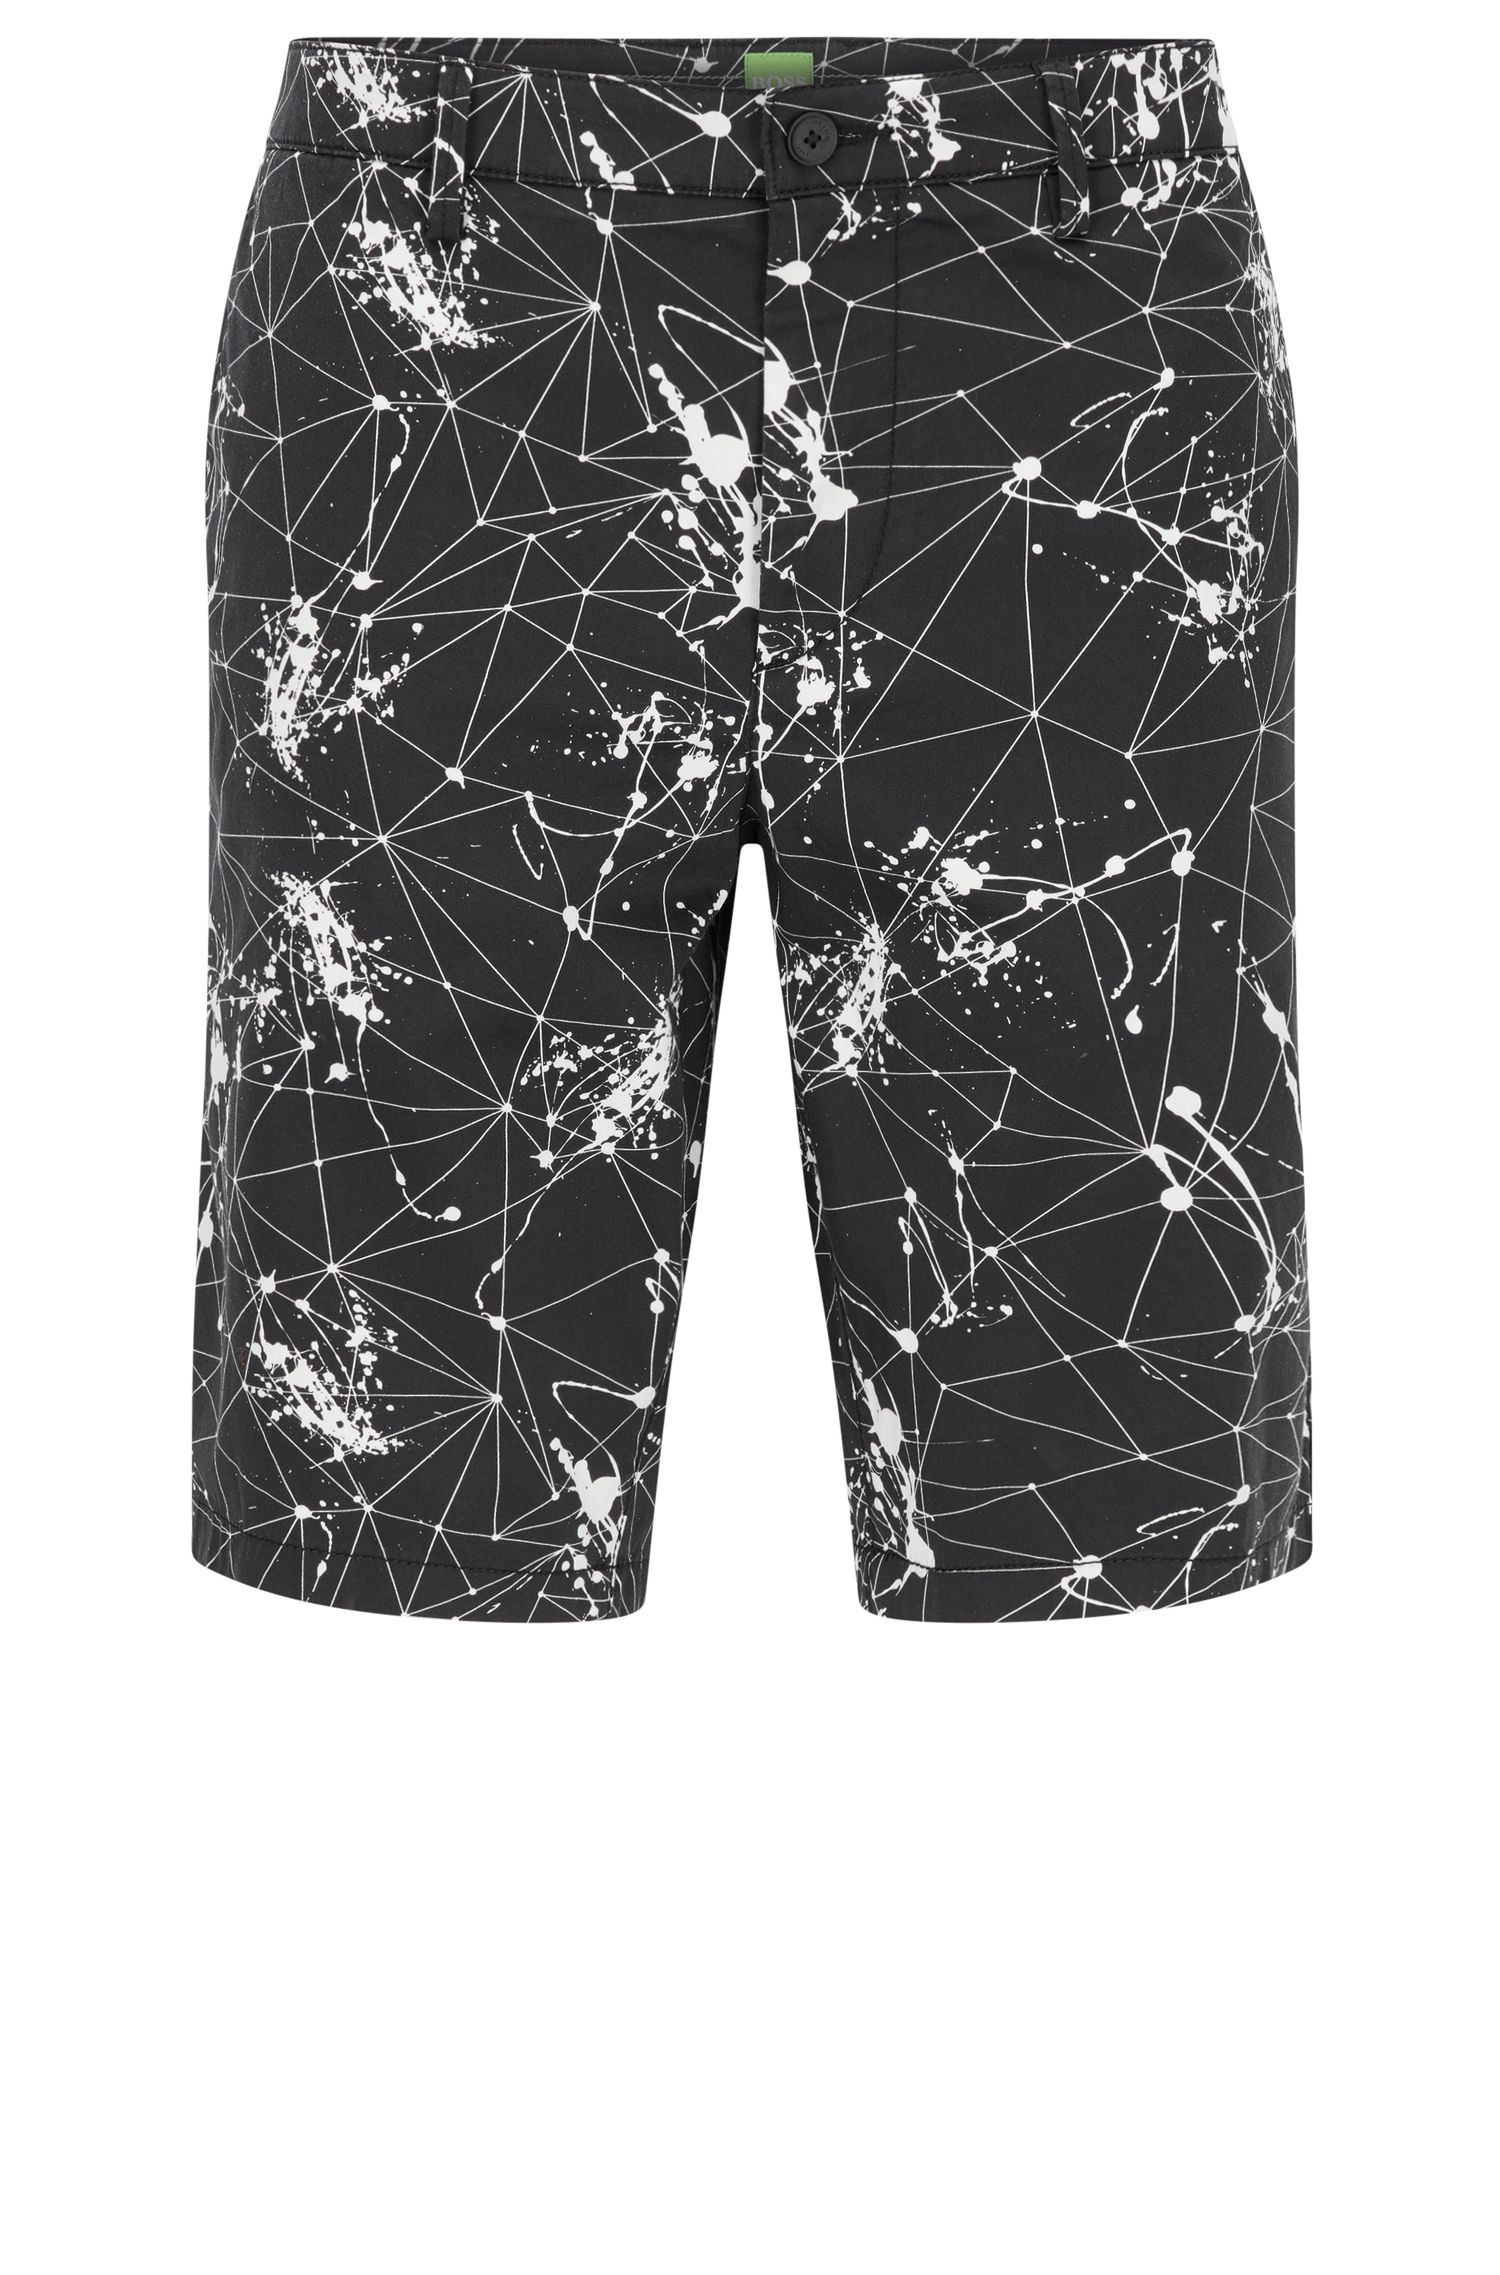 Printed Stretch Cotton Short | Liem Print W